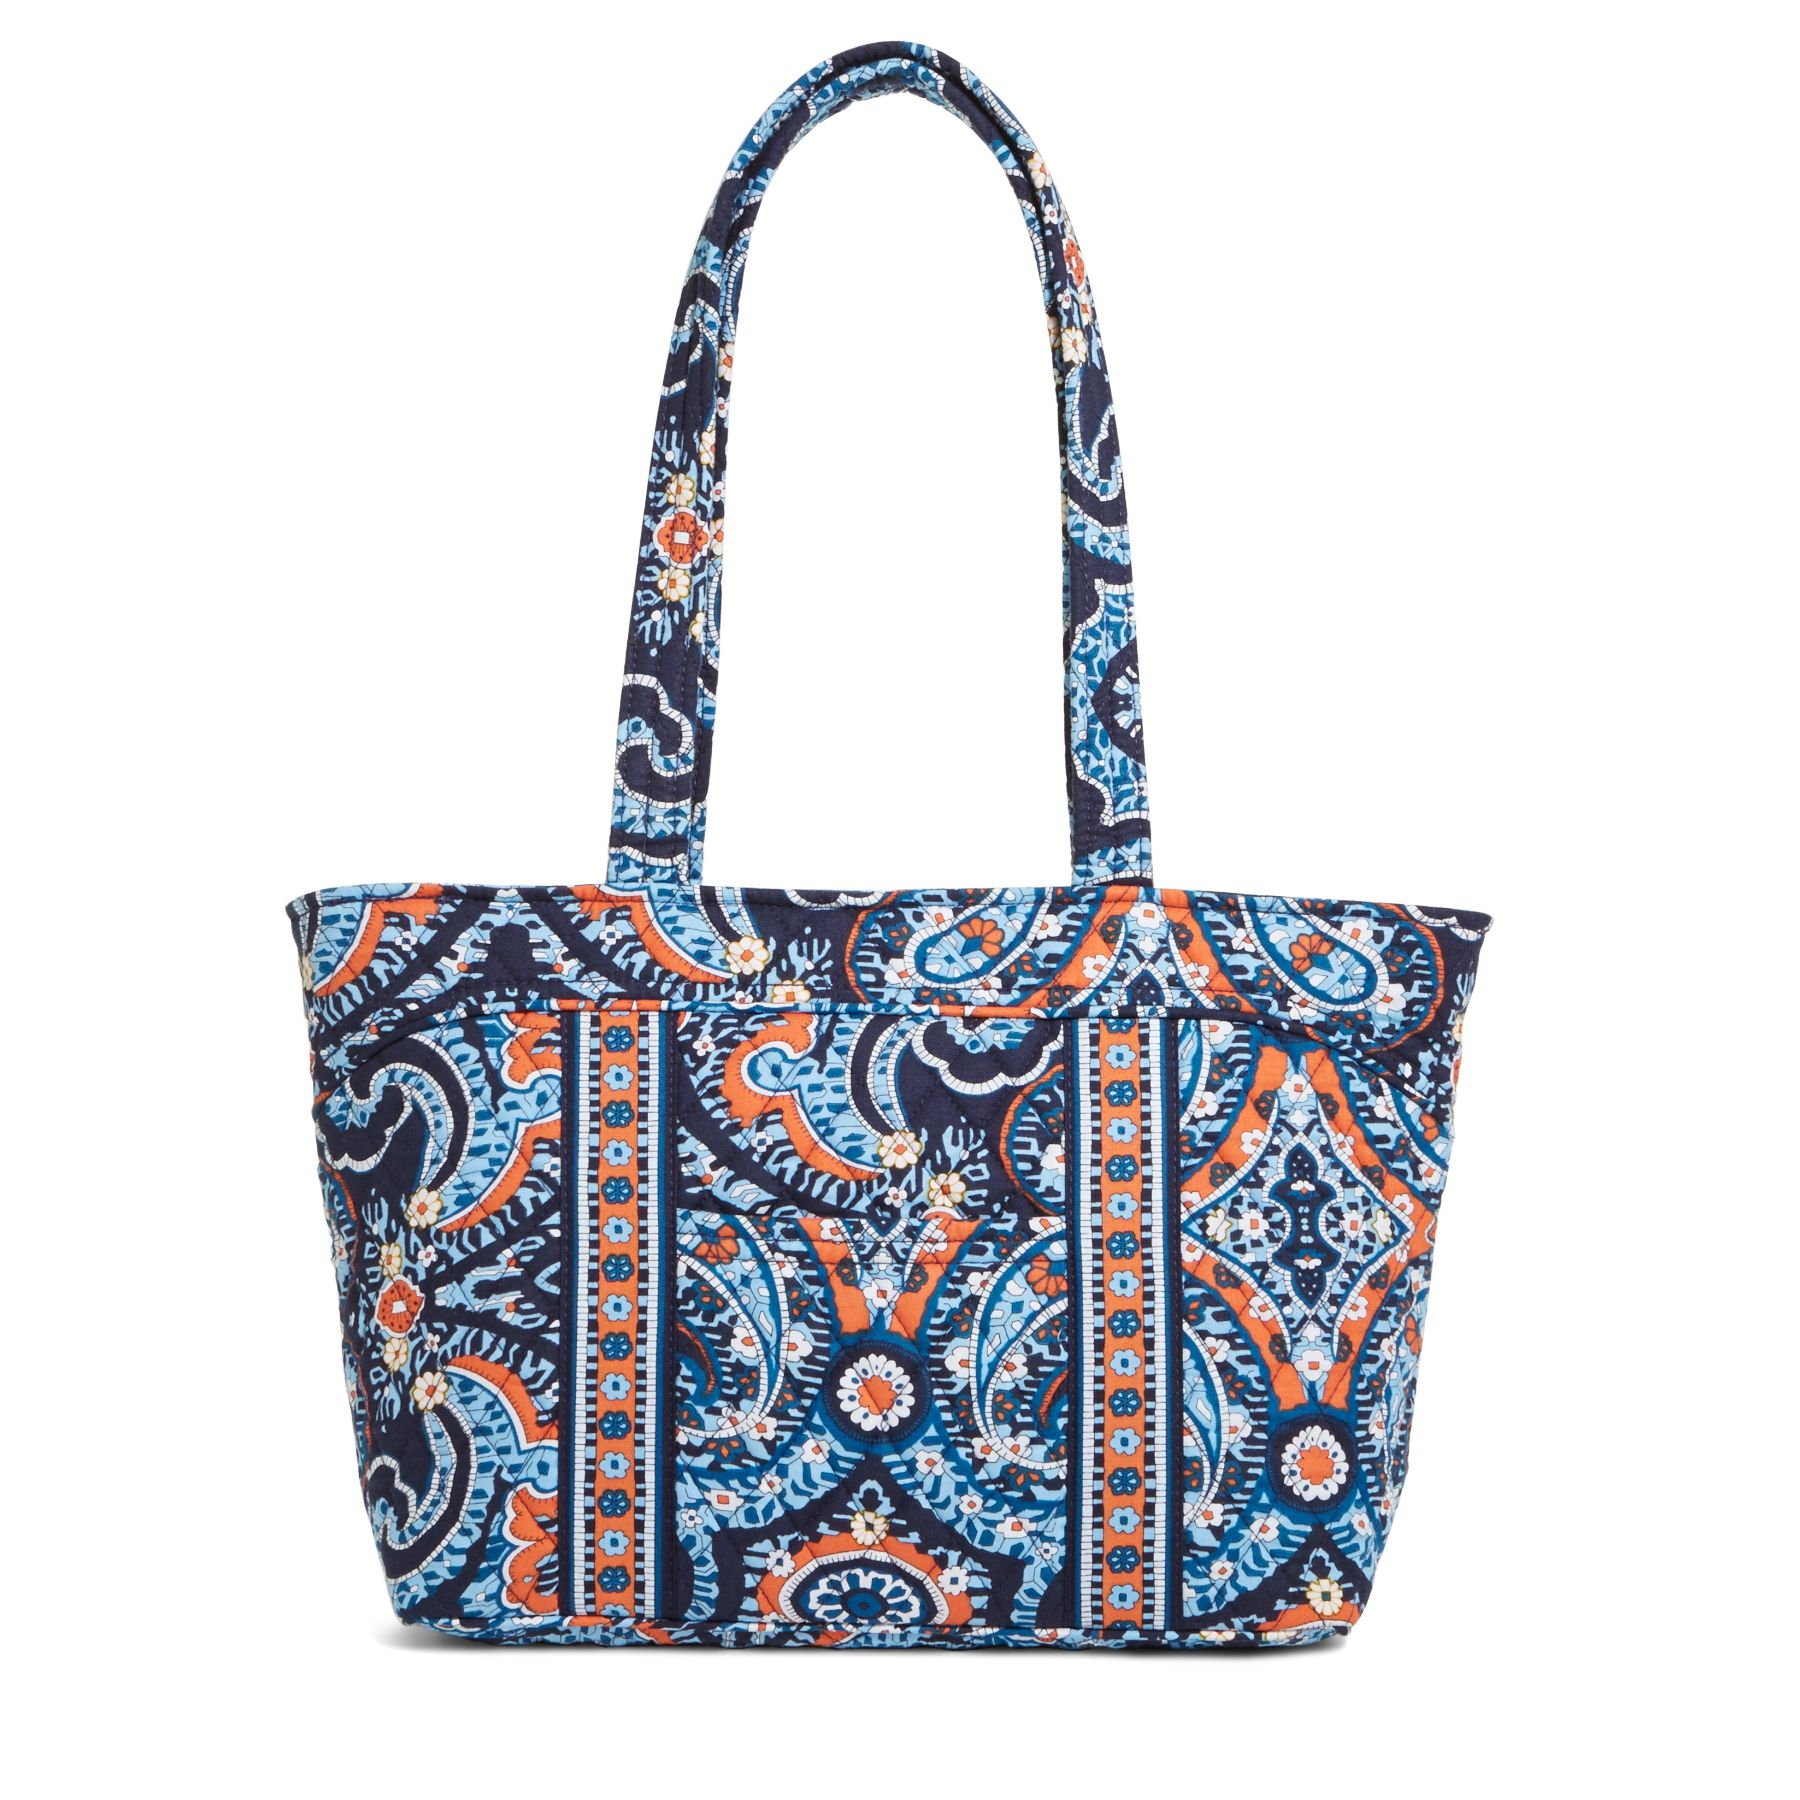 Vera Bradley Mandy Shoulder Bag in Marrakesh